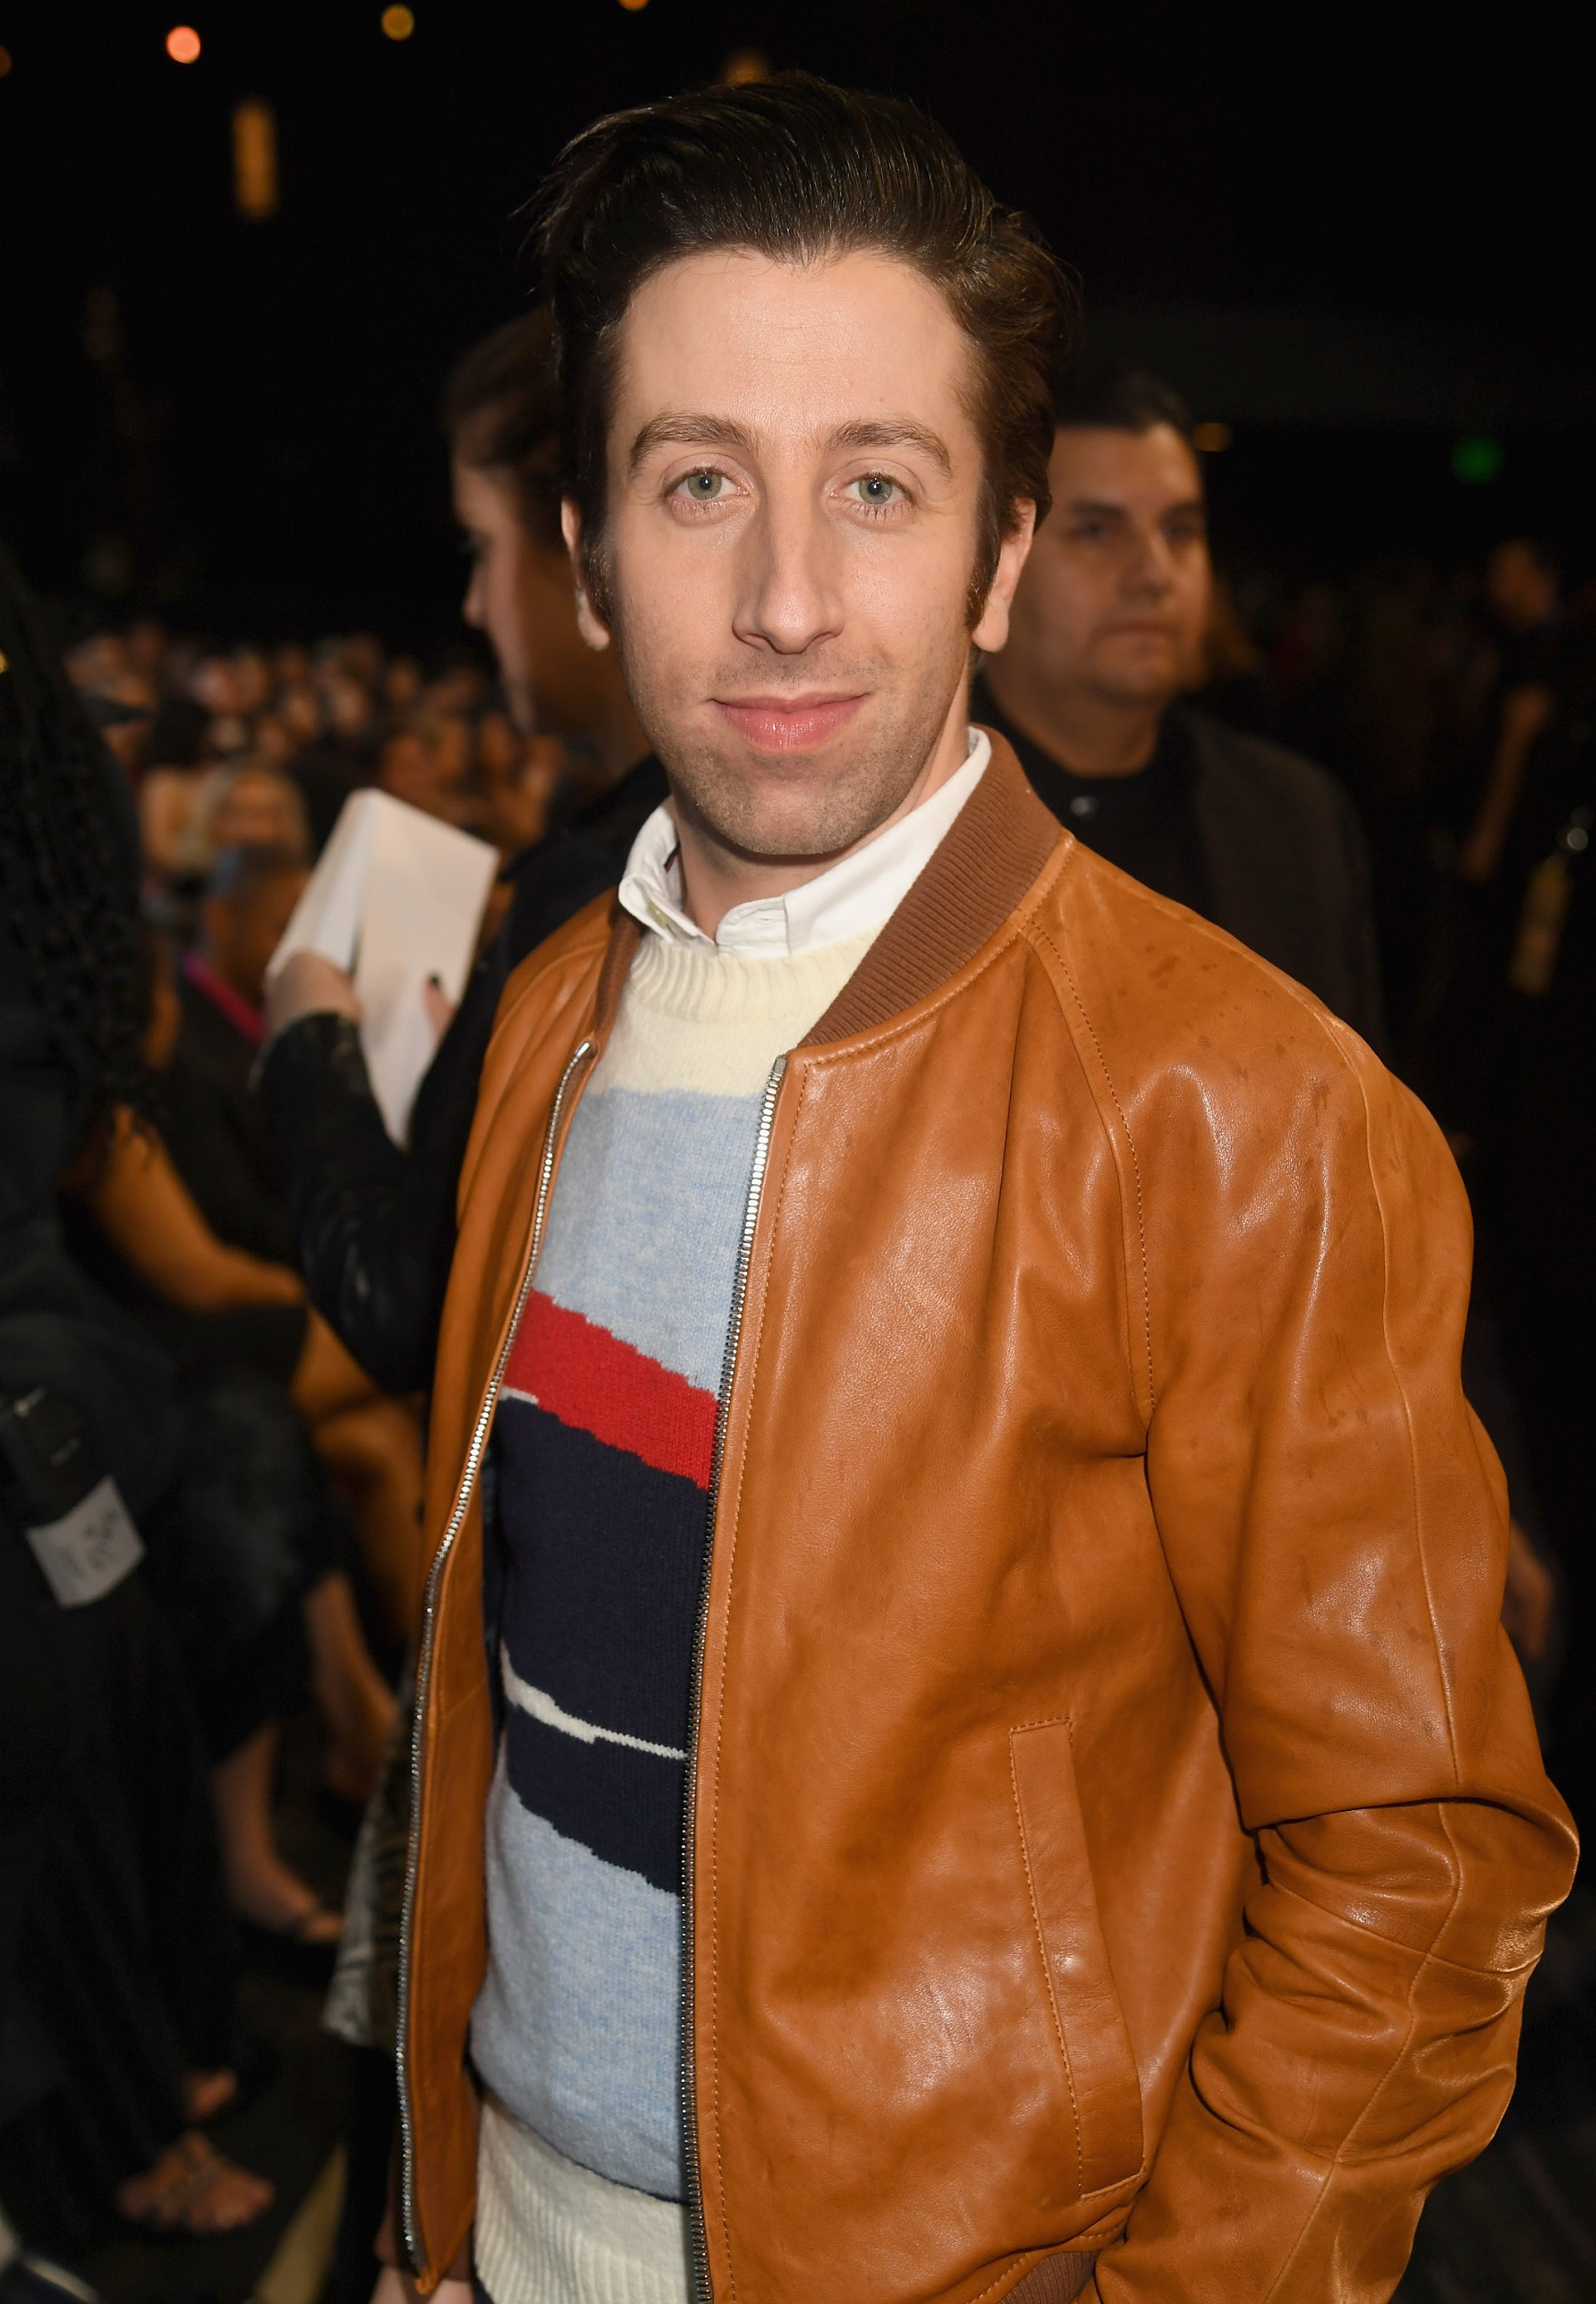 第三位:Simon Helberg《Big Bang Theory》